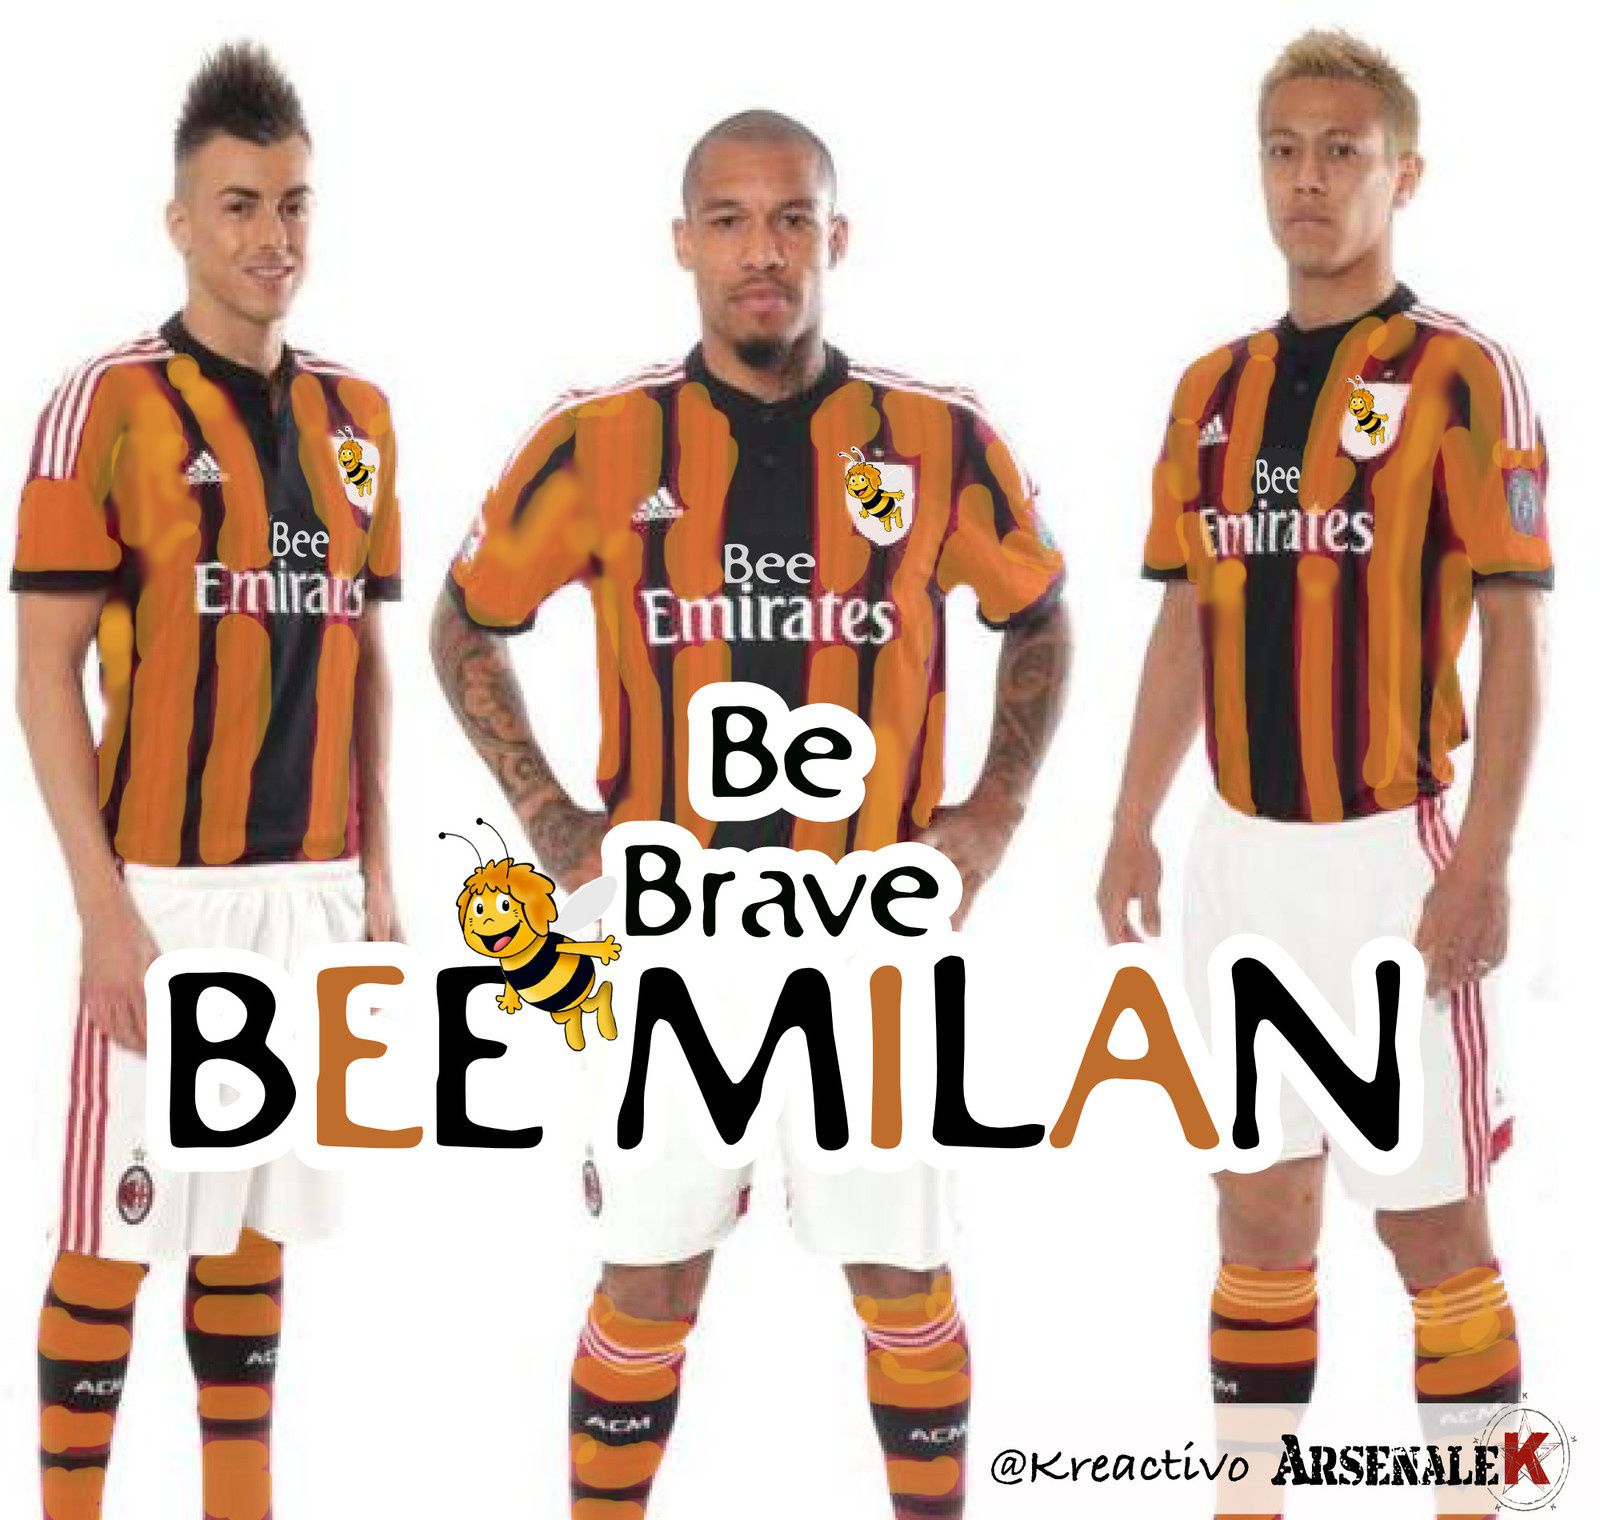 Milan To Bee or not to Bee